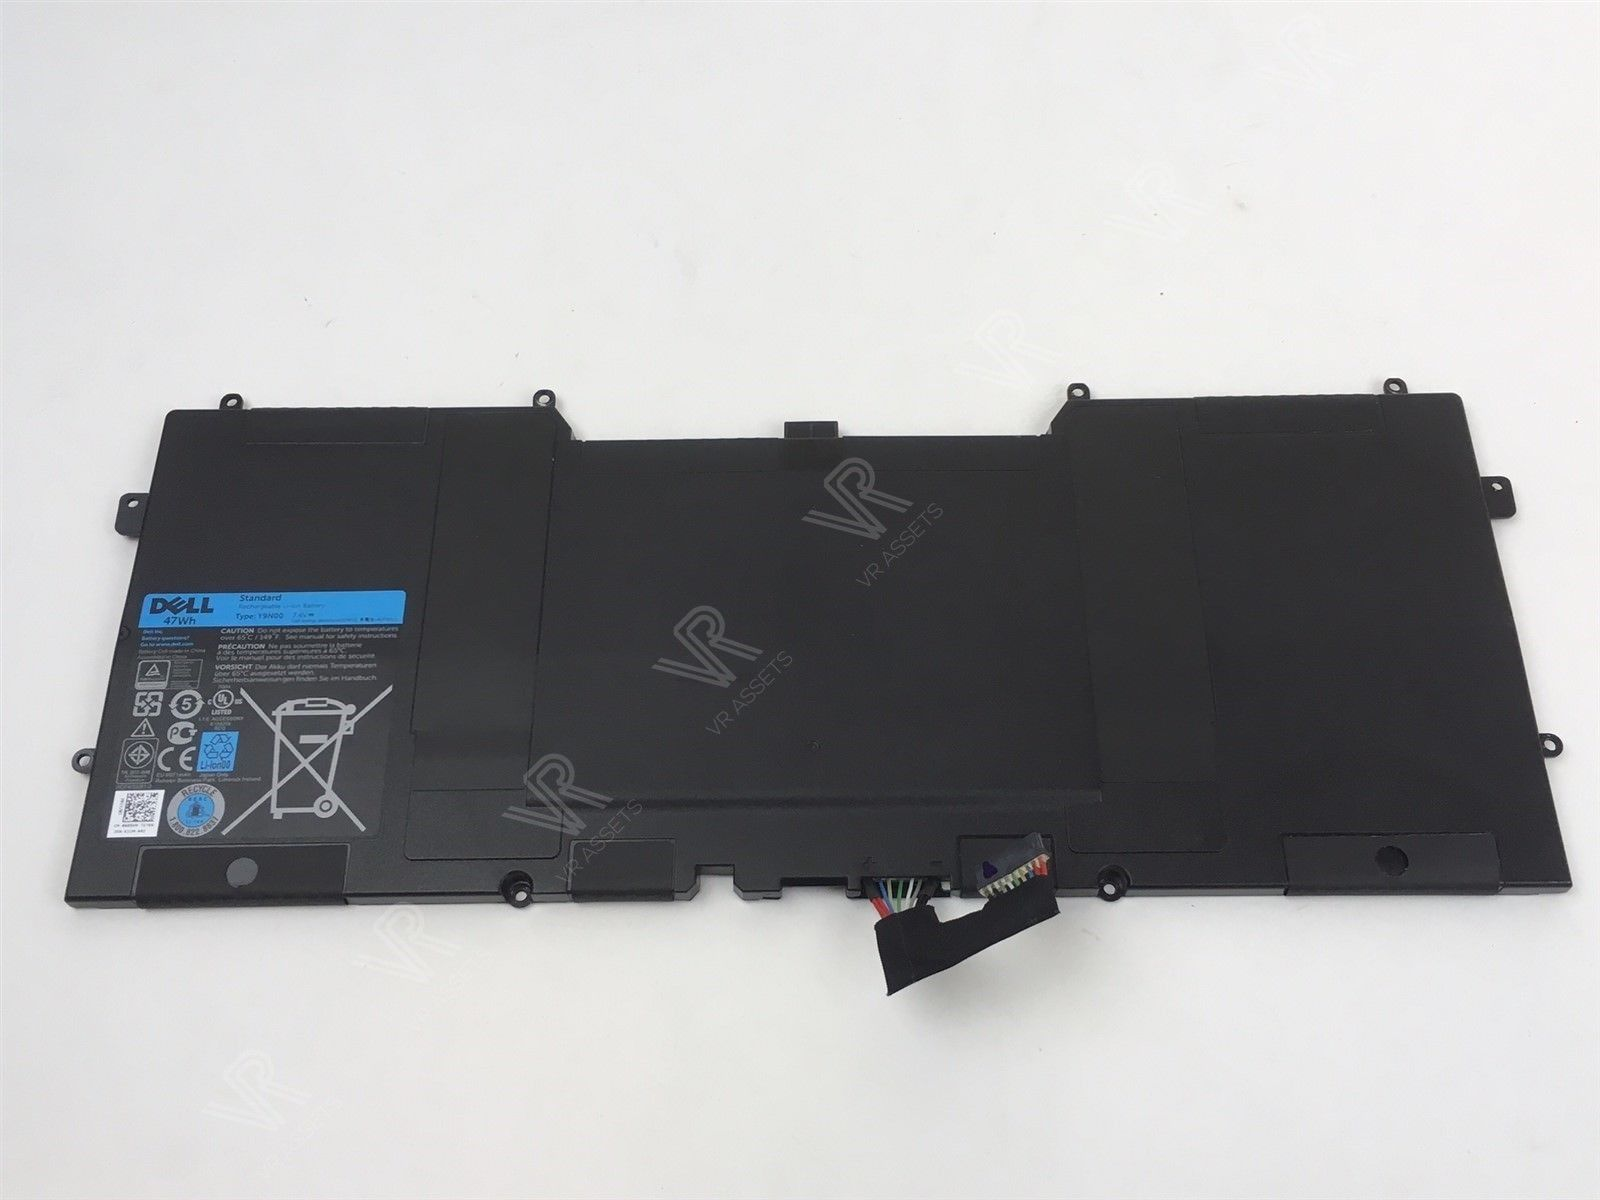 Dell XPS 12 13 47Wh 7.4V OEM Laptop Battery 13-L321X 13-L322X 489XN 0489XN